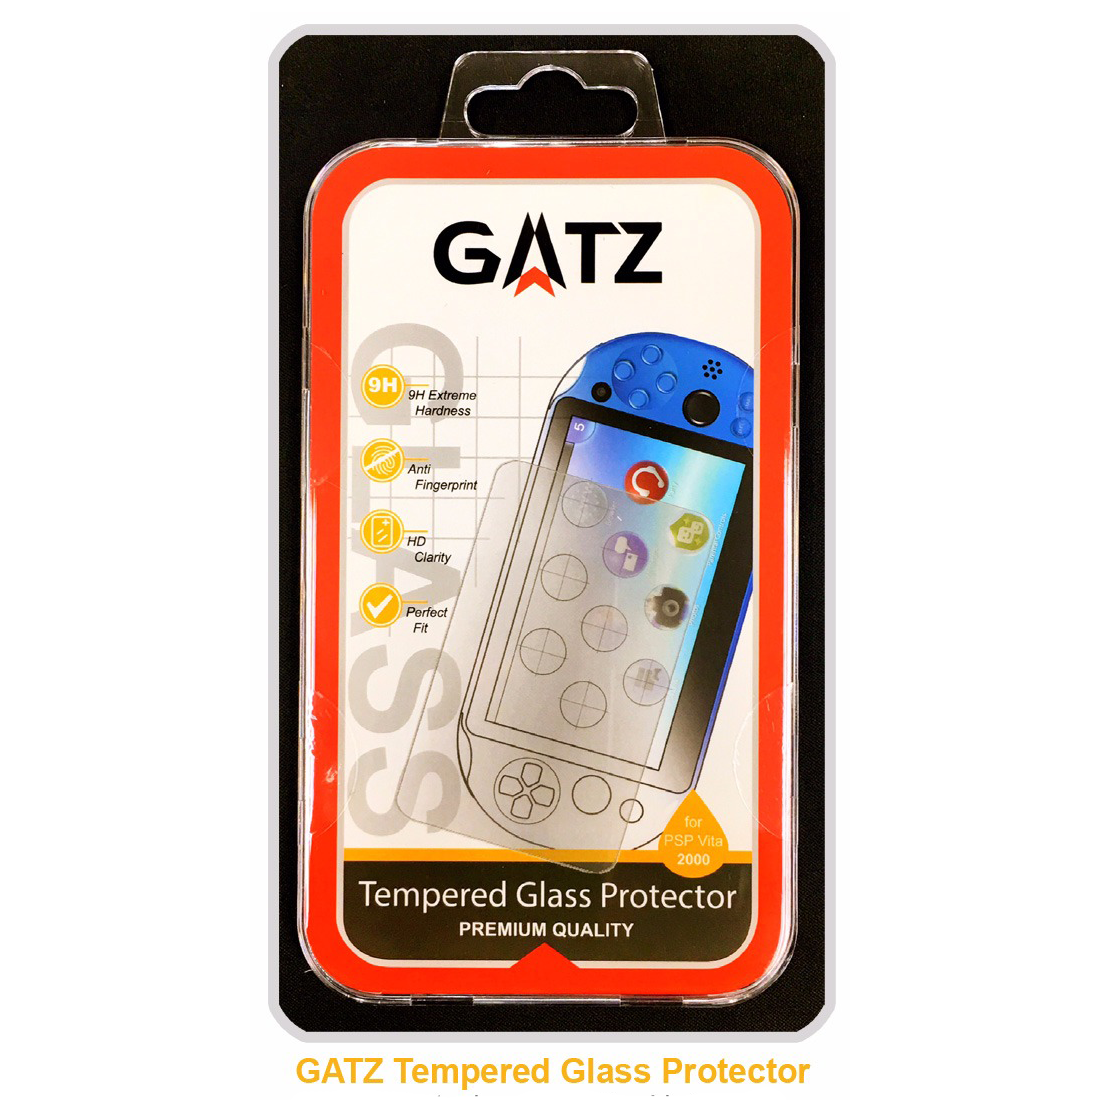 Gatz Premium Quality Tempered Glass Protector for PS Vita 2006 Series